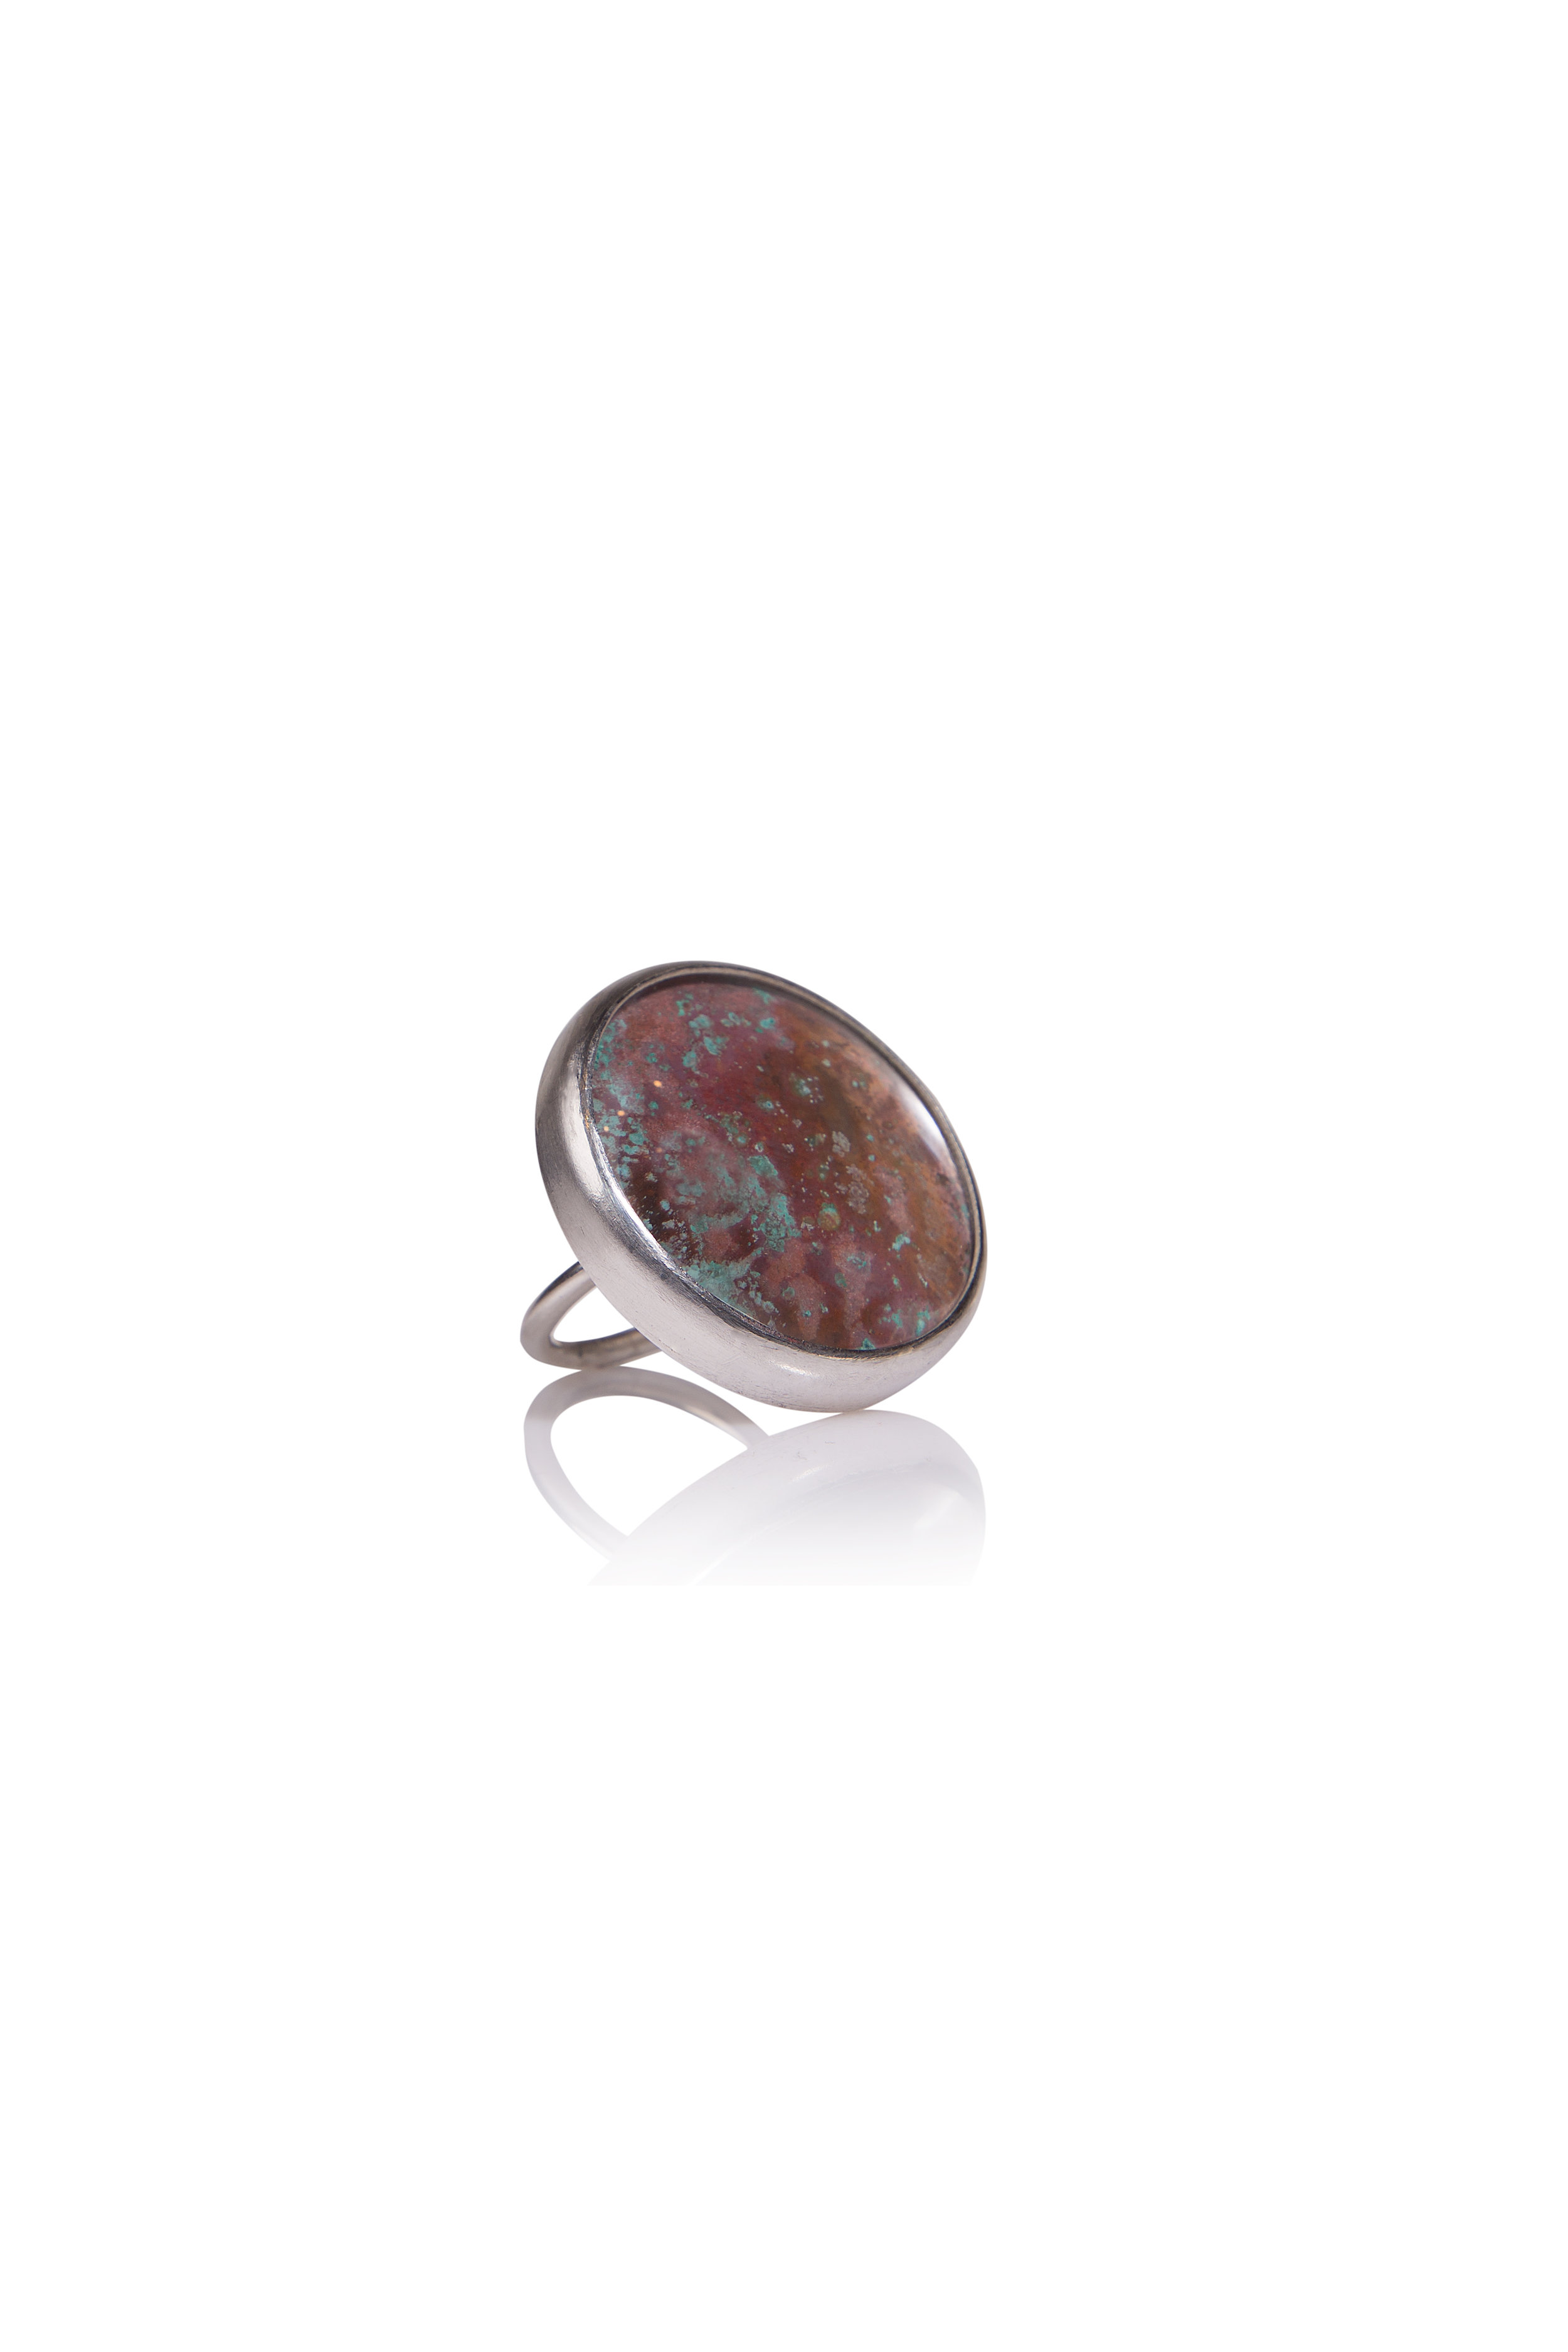 Large Classic Copper Cocktail Ring  Sterling silver with copper patina set under glass